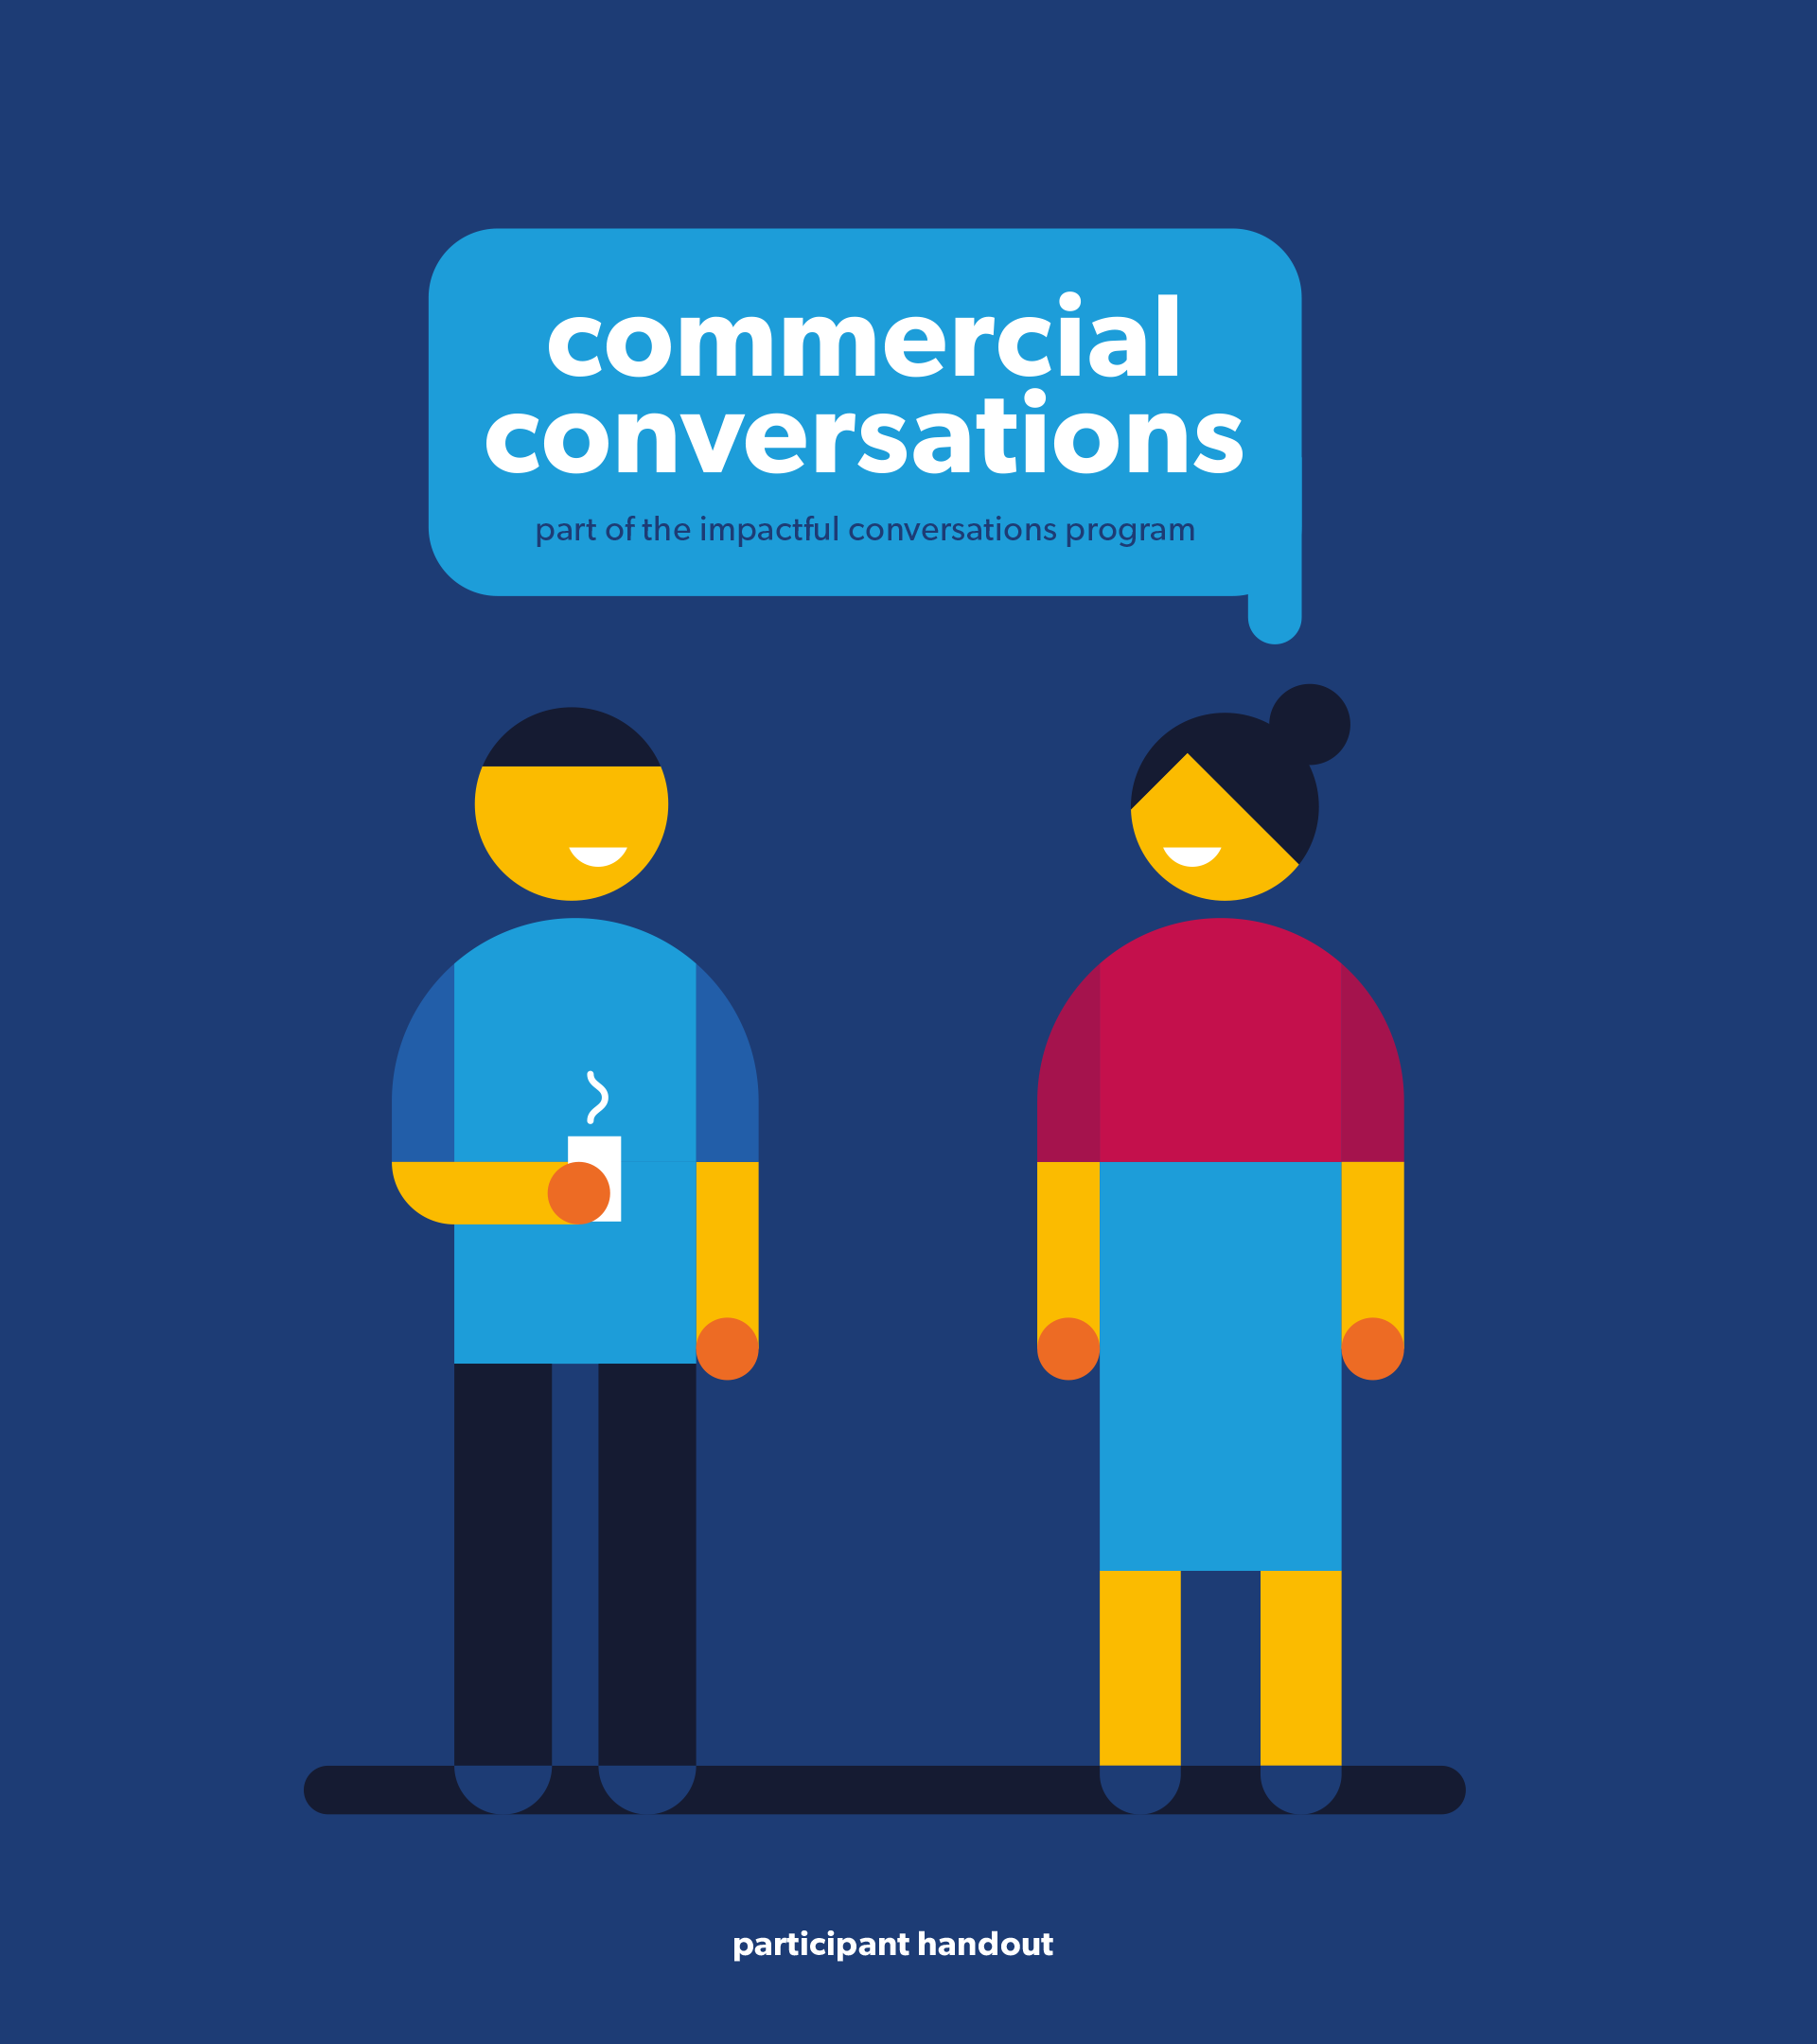 CommercialConversations